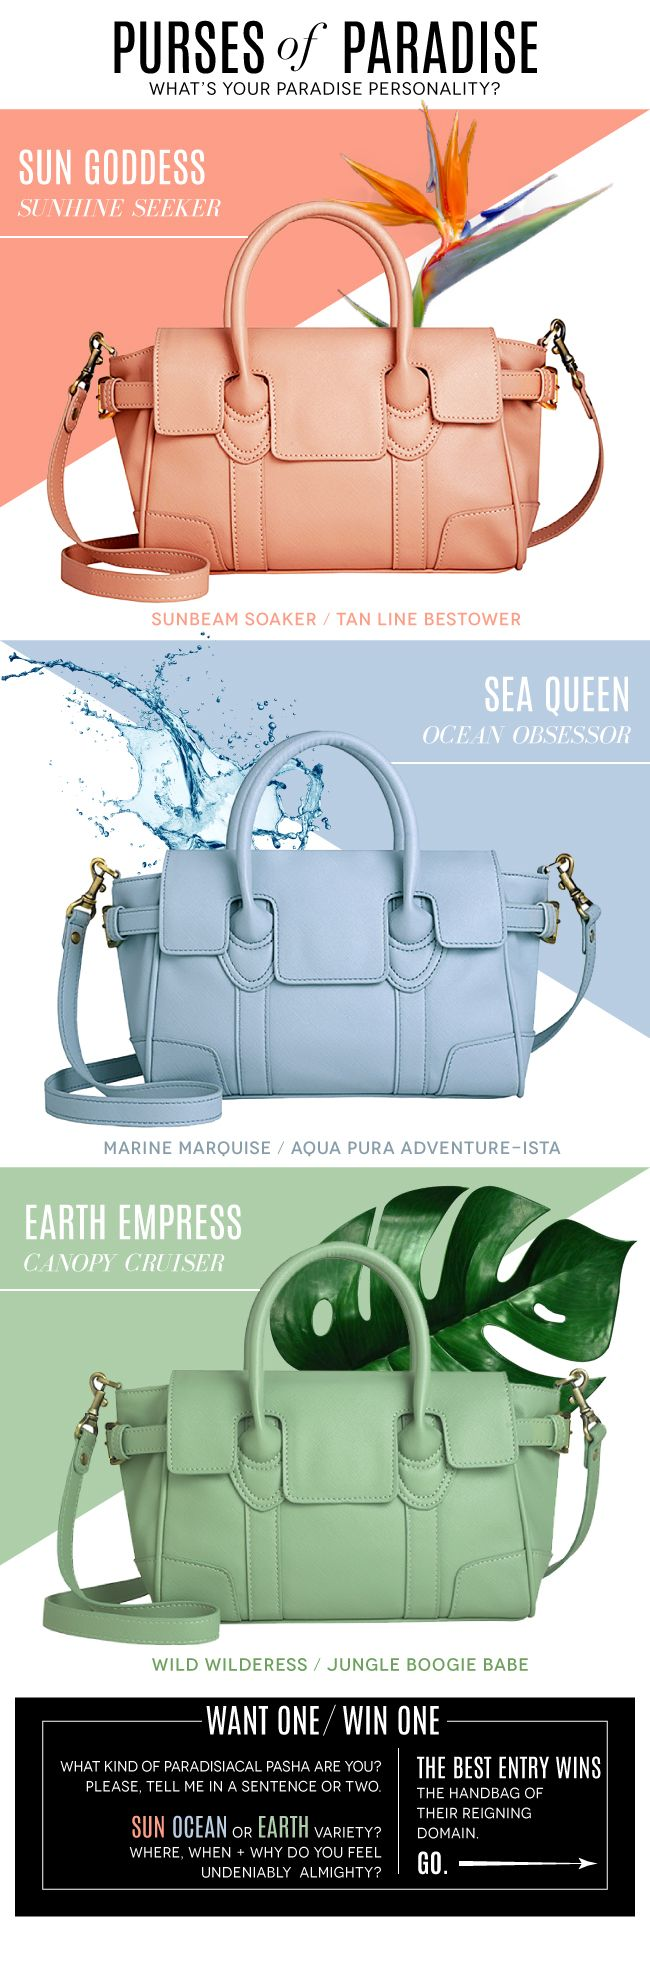 Purses of Paradise Handbag GIVEAWAY! Click through to comment + enter to win a…